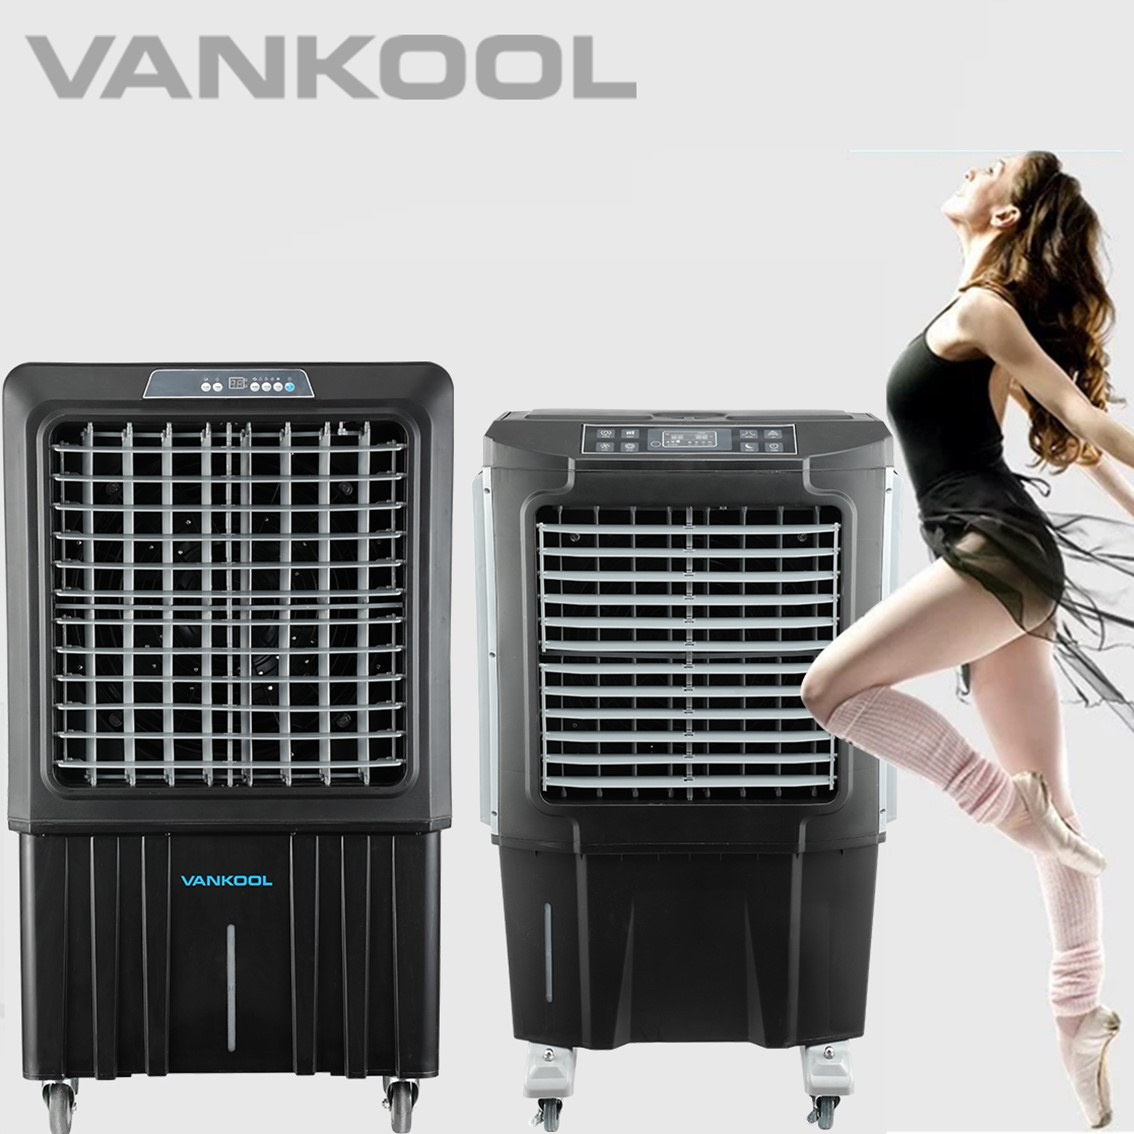 Air Cooler VS AC, Which Is Better